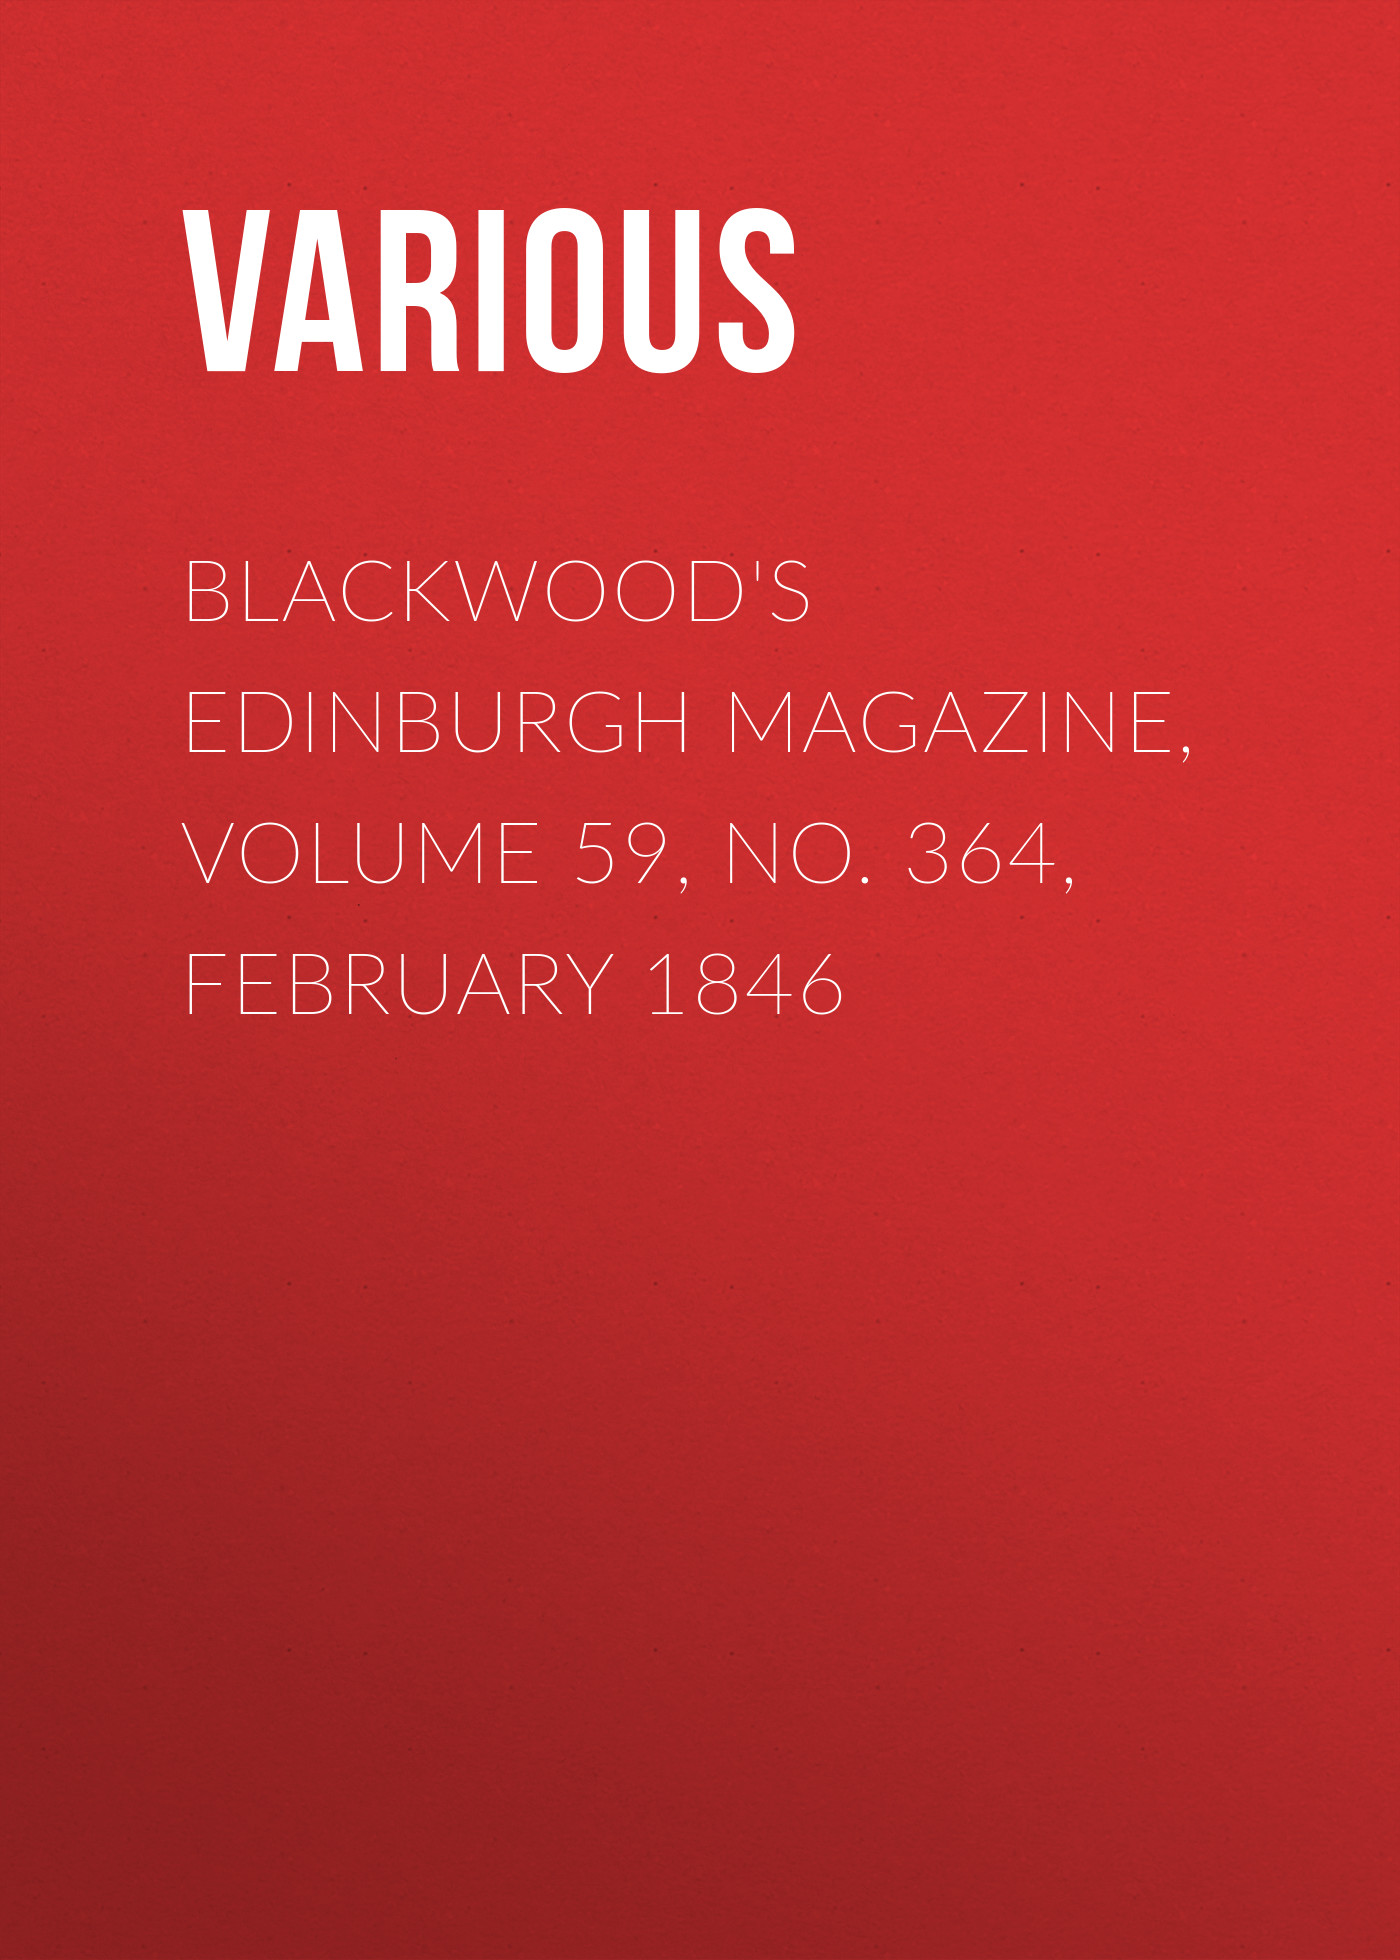 Various Blackwood's Edinburgh Magazine, Volume 59, No. 364, February 1846 цена